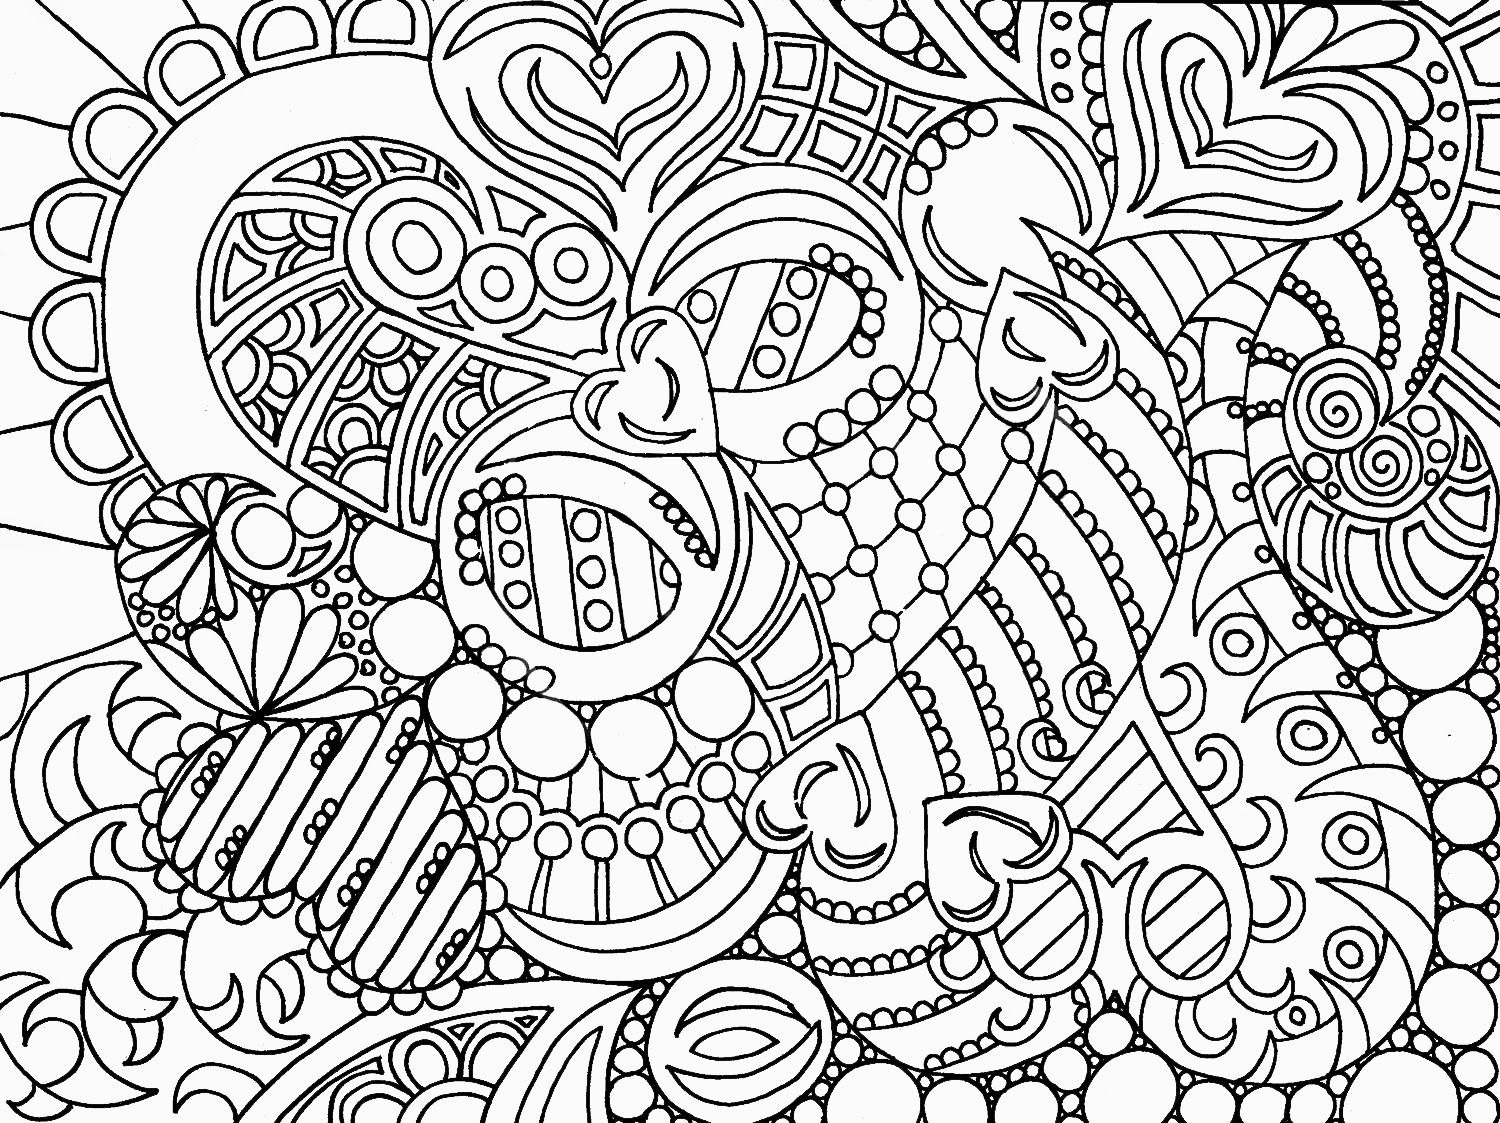 abstract coloring pages you can get abstract art coloring pages for adult here - Abstract Coloring Pages